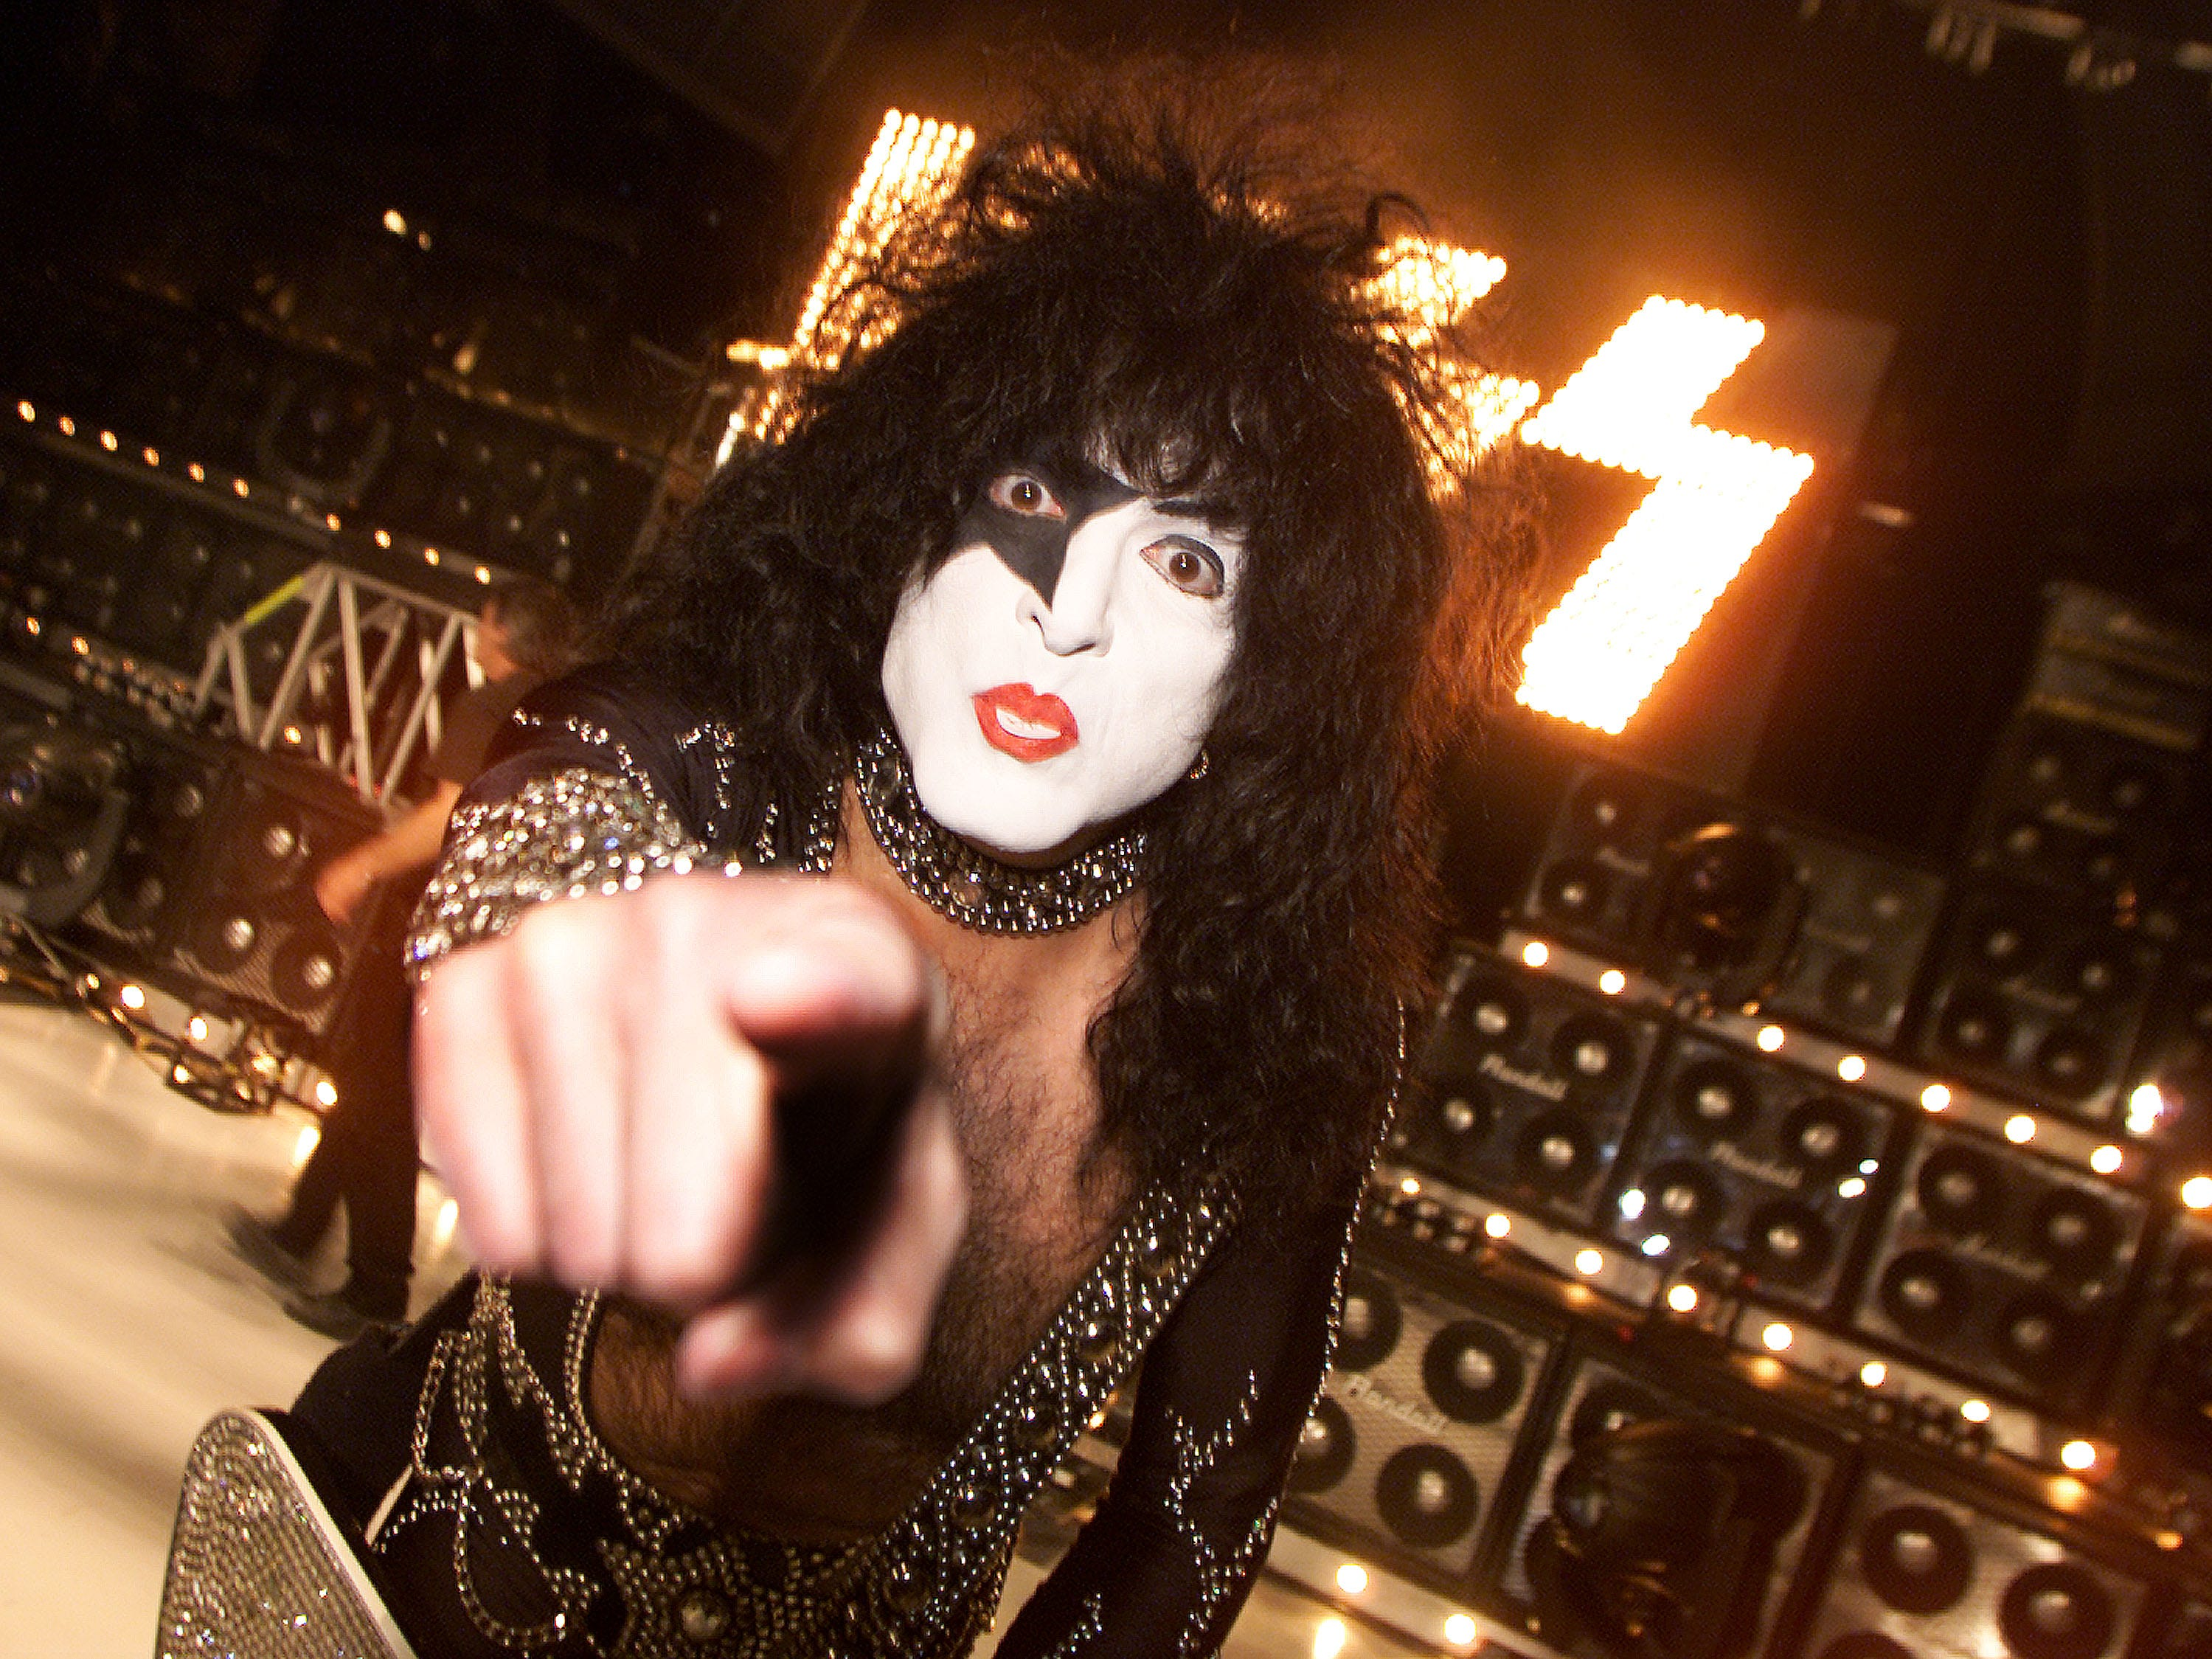 """Paul Stanley of Kiss performs at a taping of """"American Bandstand's 50th: A Celebration"""" at the Pasadena Civic Auditorium on April 19, 2002. Photo by Kevin Winter/ImageDirect."""